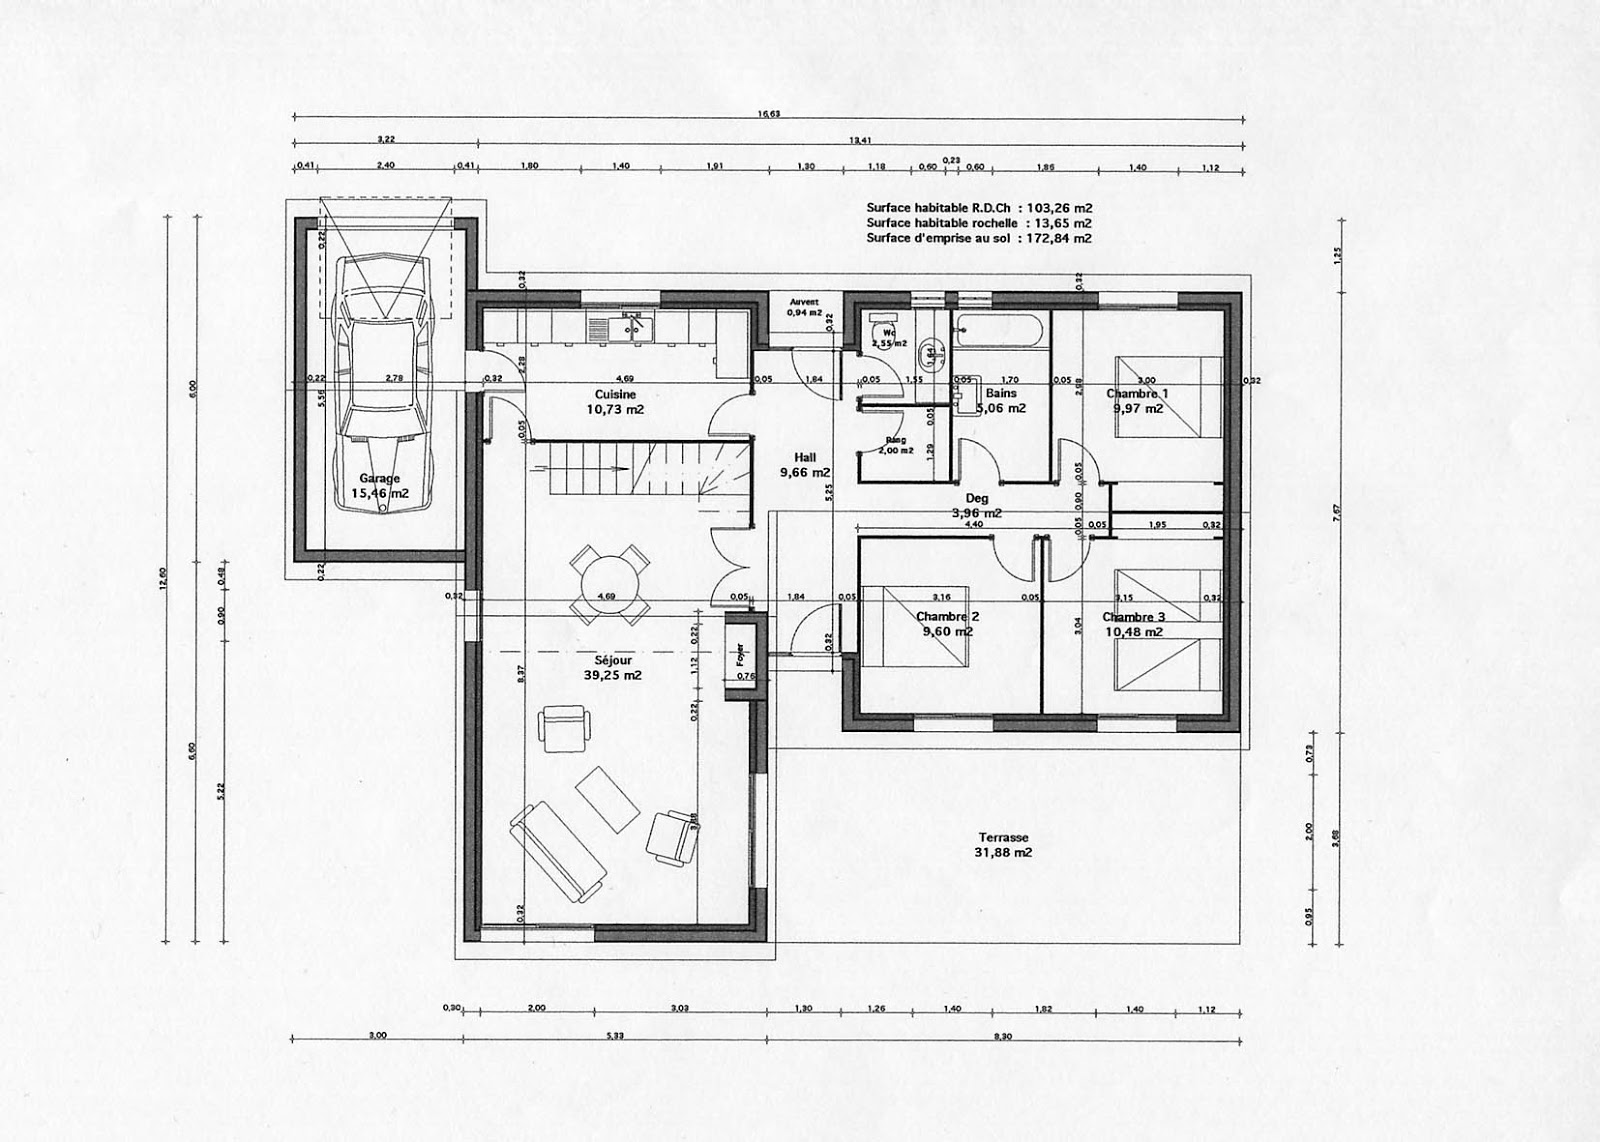 Plan gratuit maison architecte contemporaine Plan gratuit maison contemporaine